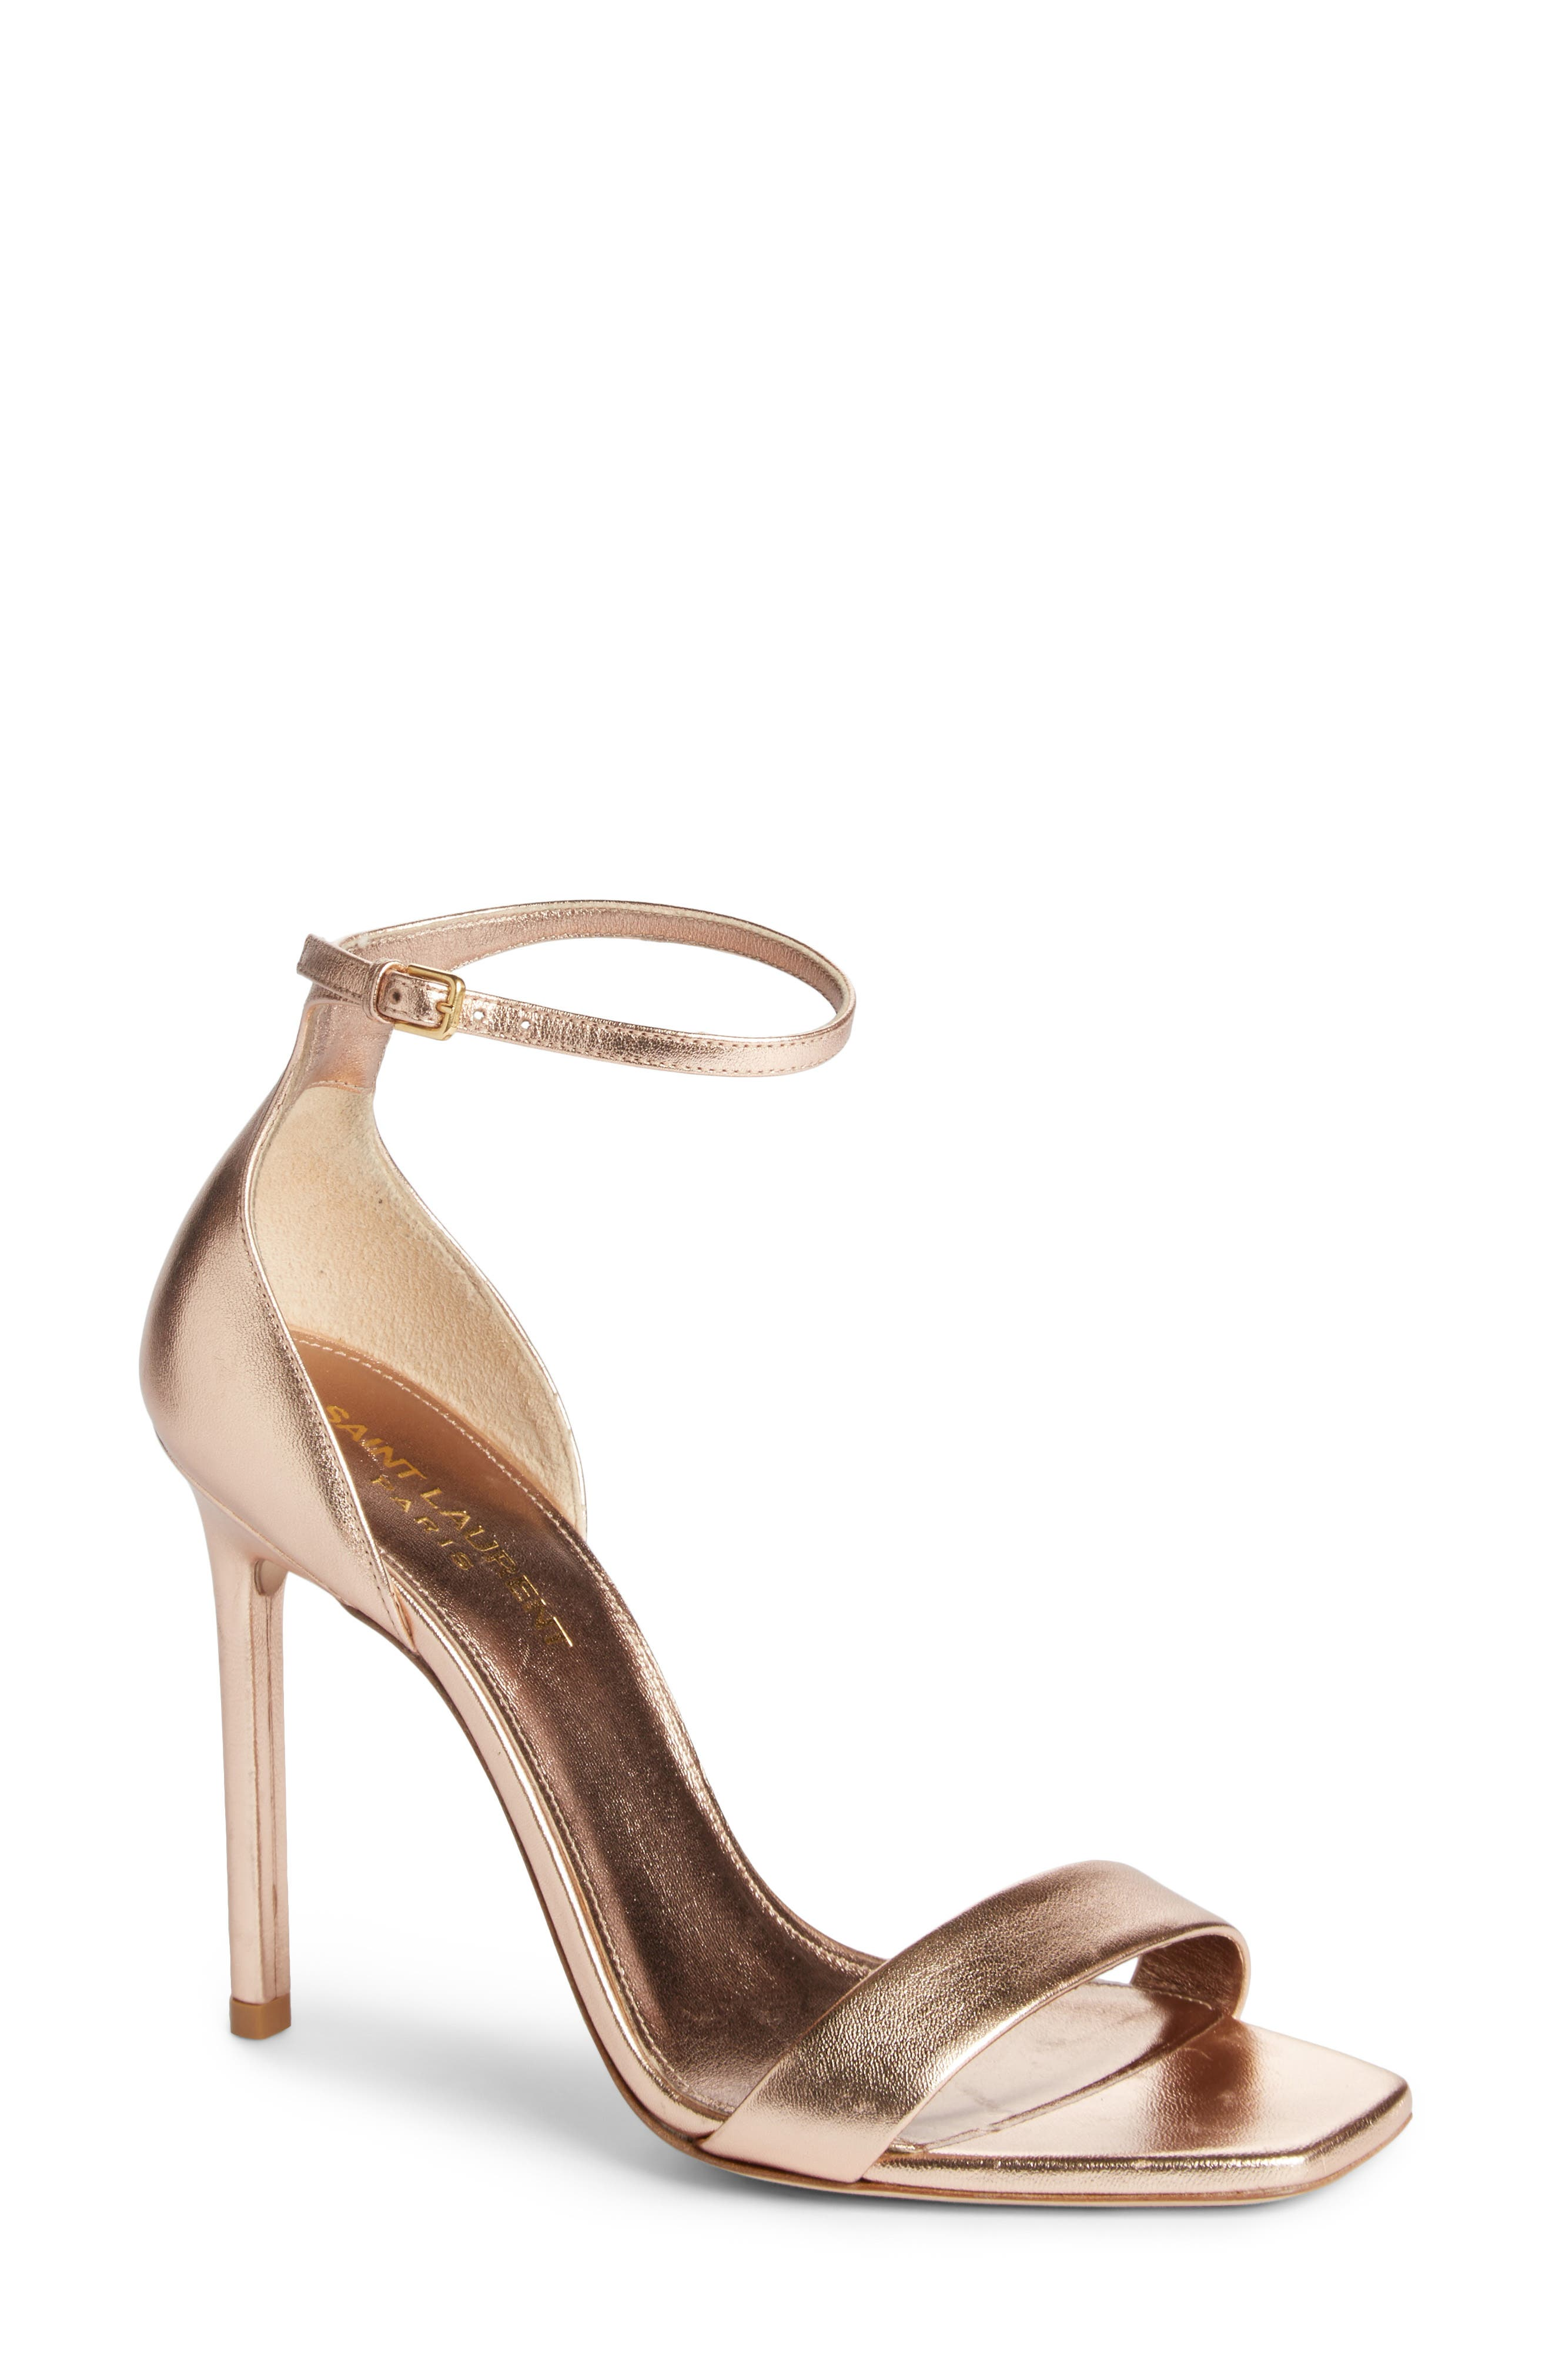 Saint Laurent Amber Ankle Strap Sandal (Women)